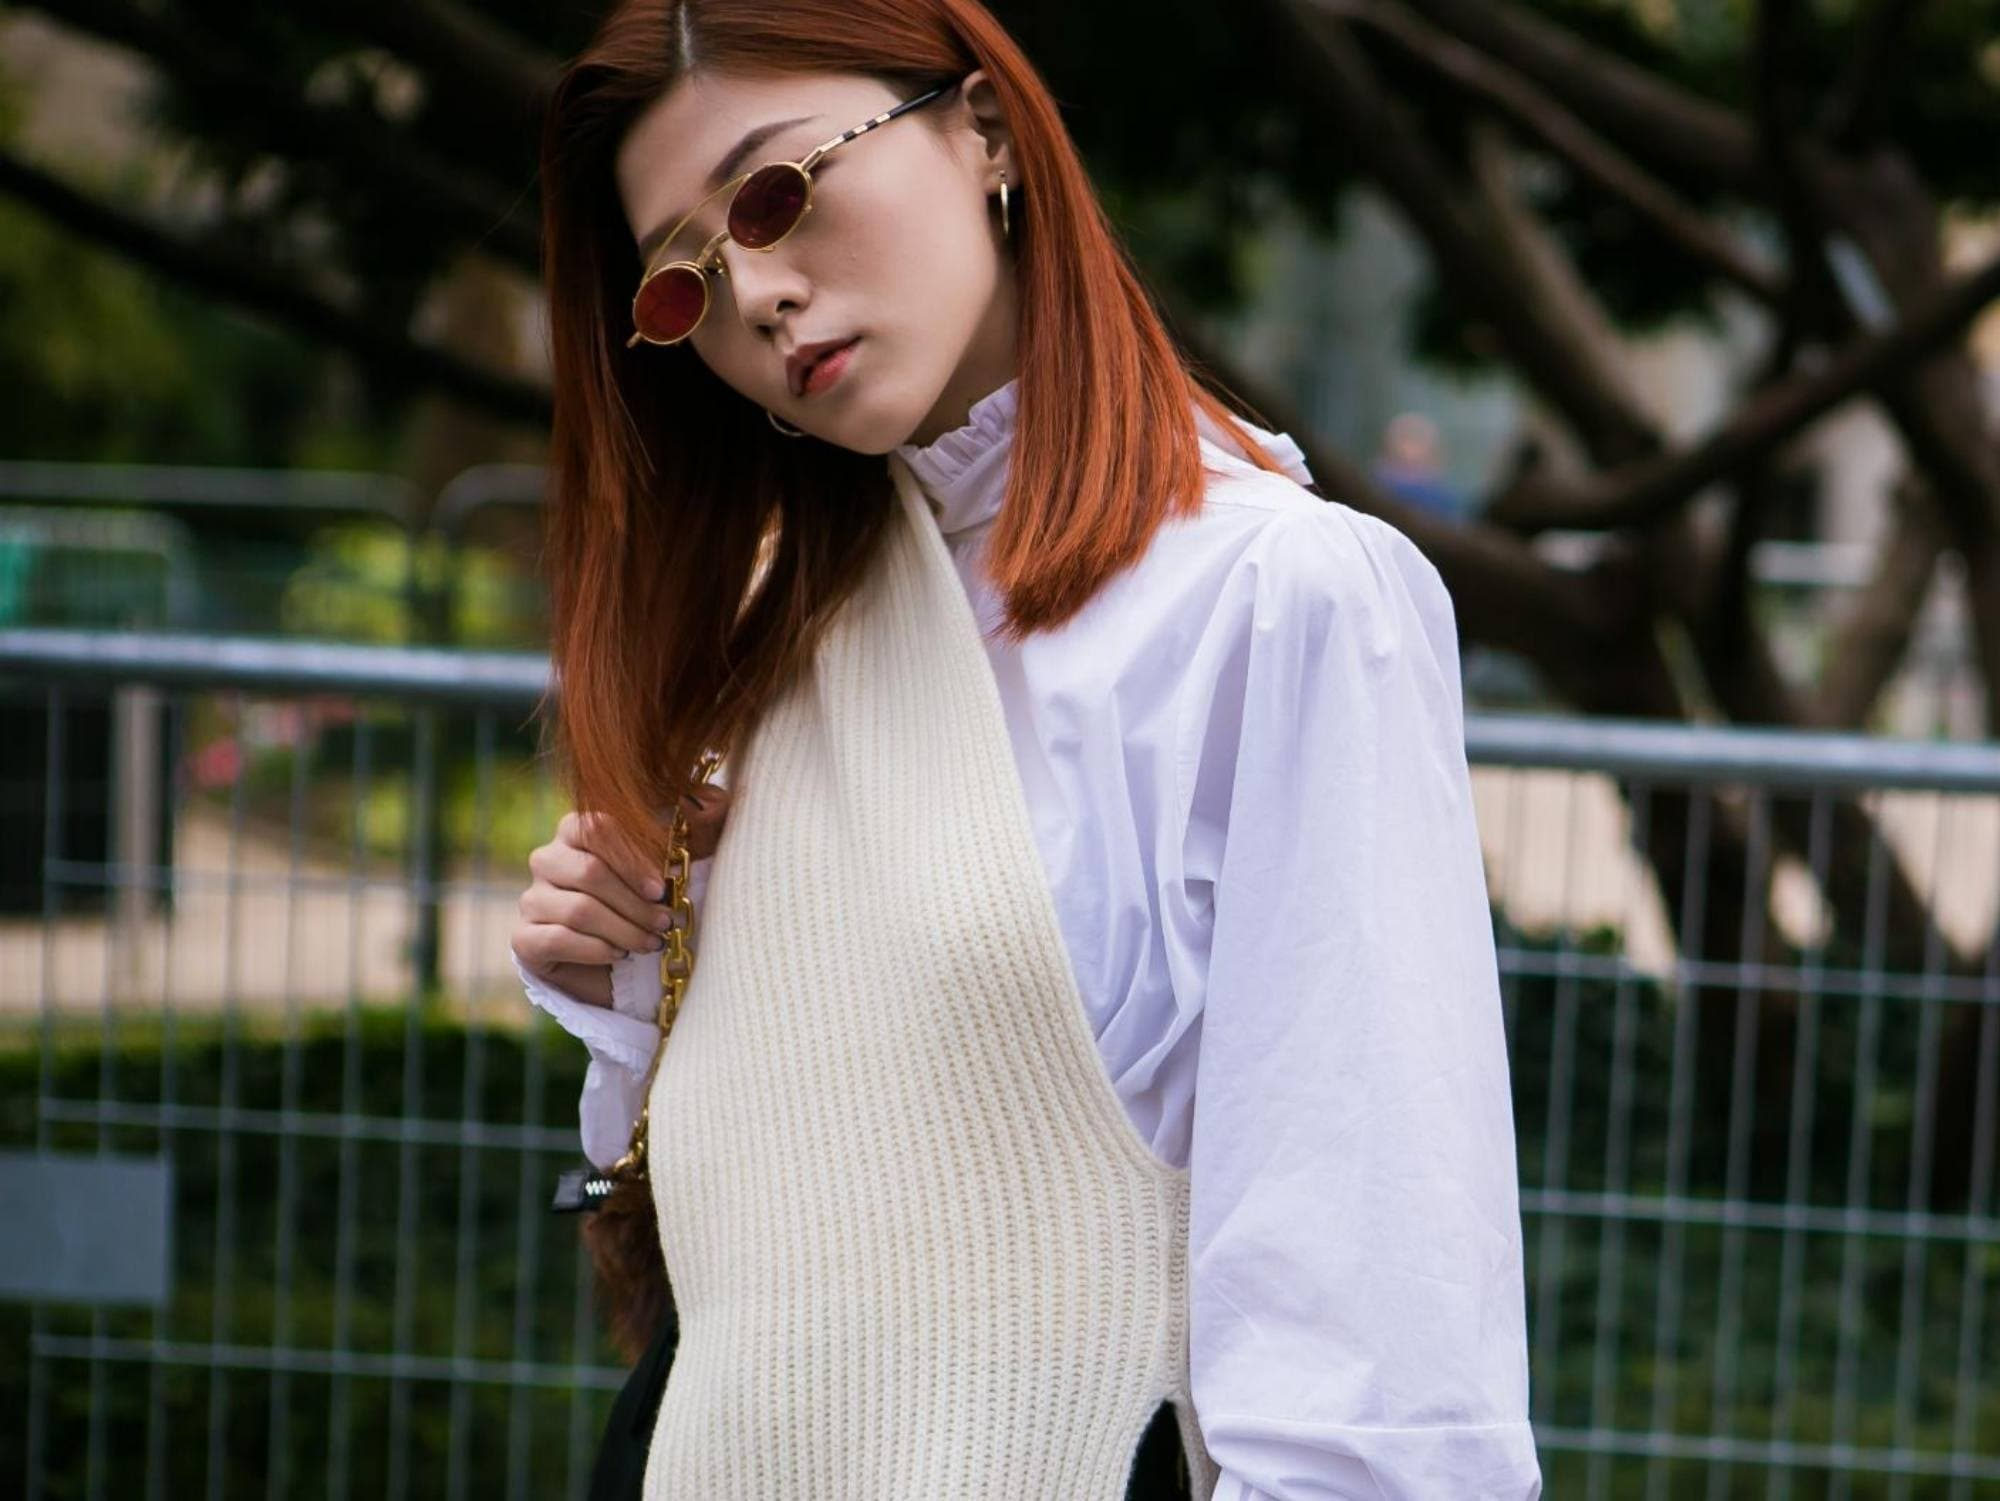 Woman with natural copper hair in white top and shades